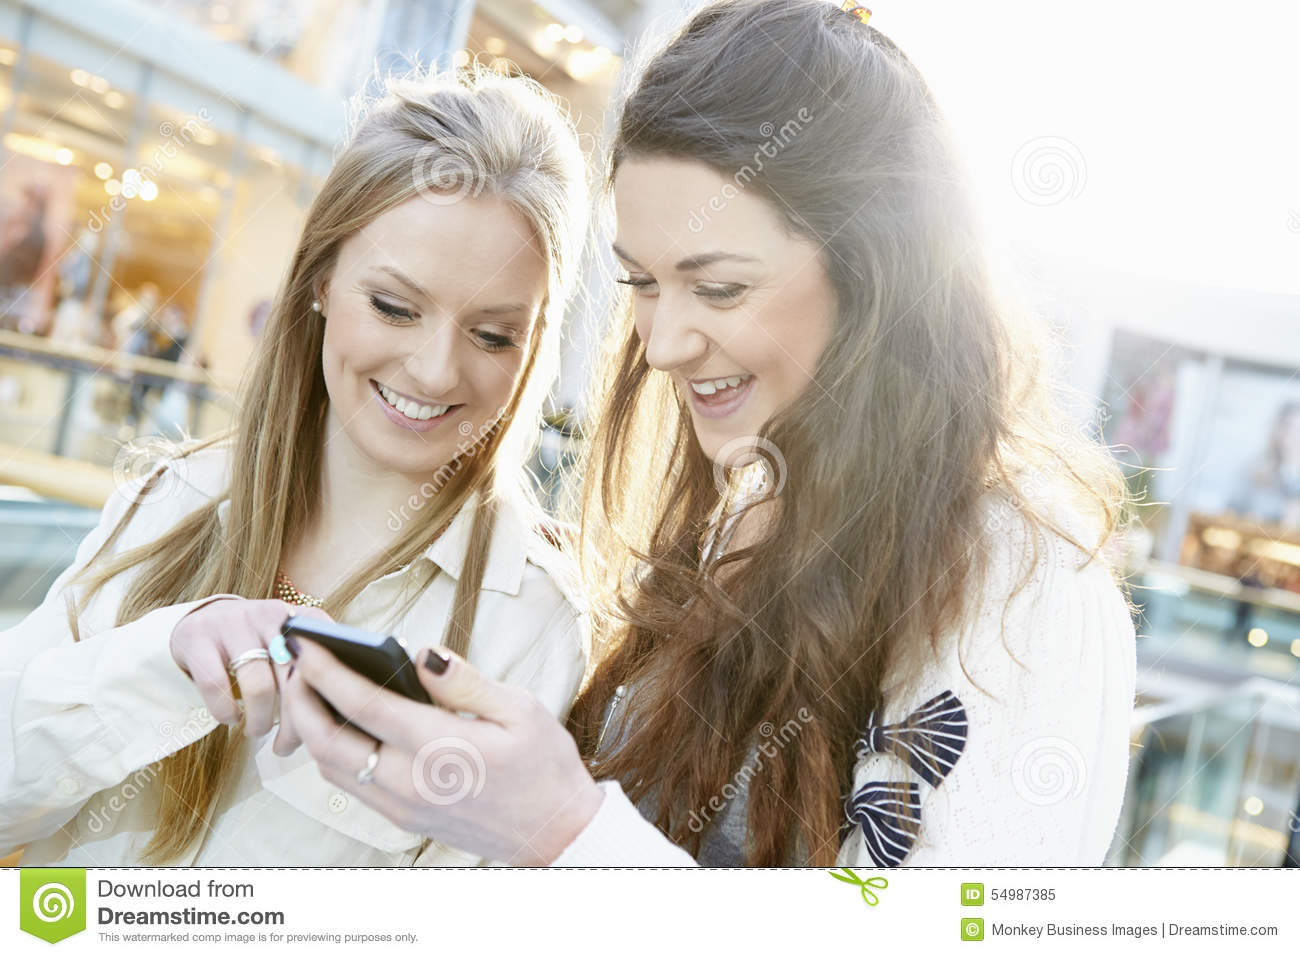 Two Female Friends Shopping In Mall Looking At Mobile Phone